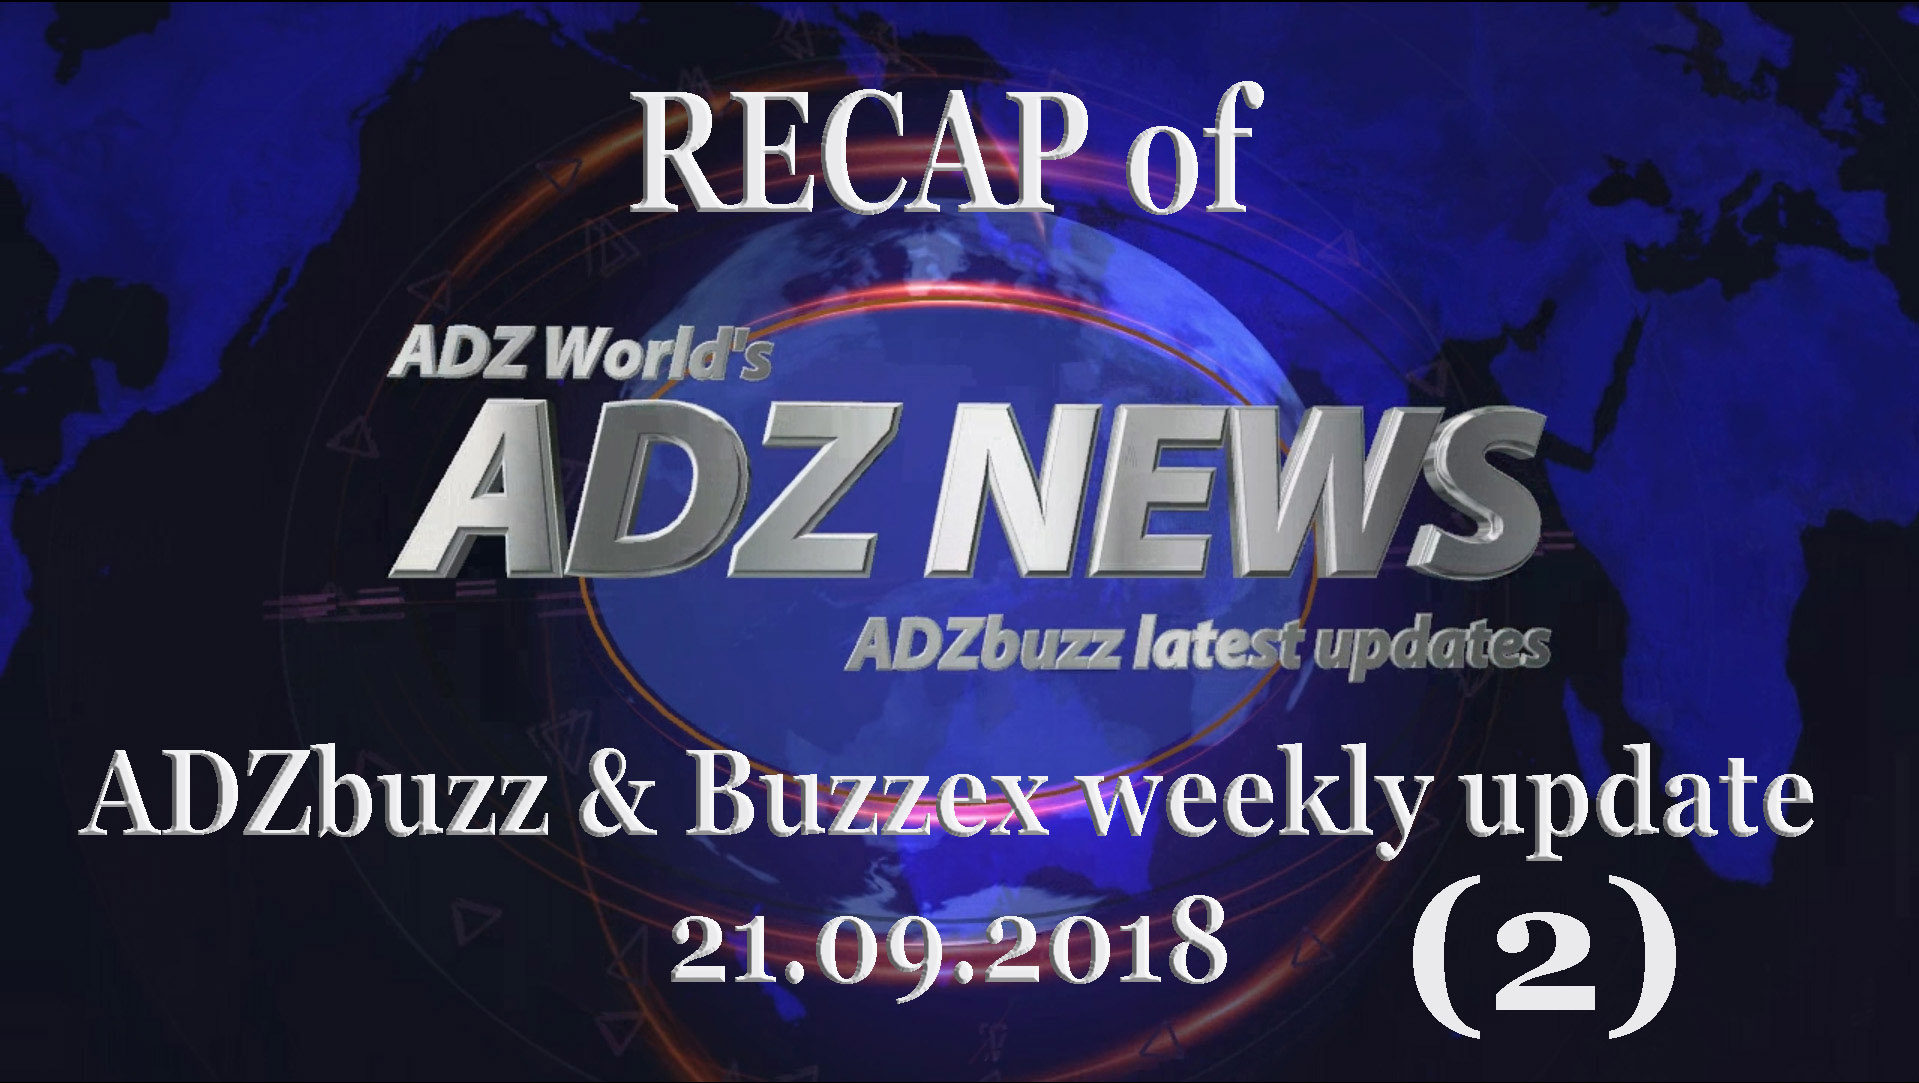 The recap of the ADZbuzz & Buzzex weekly update nr 2  (21.09.2018)